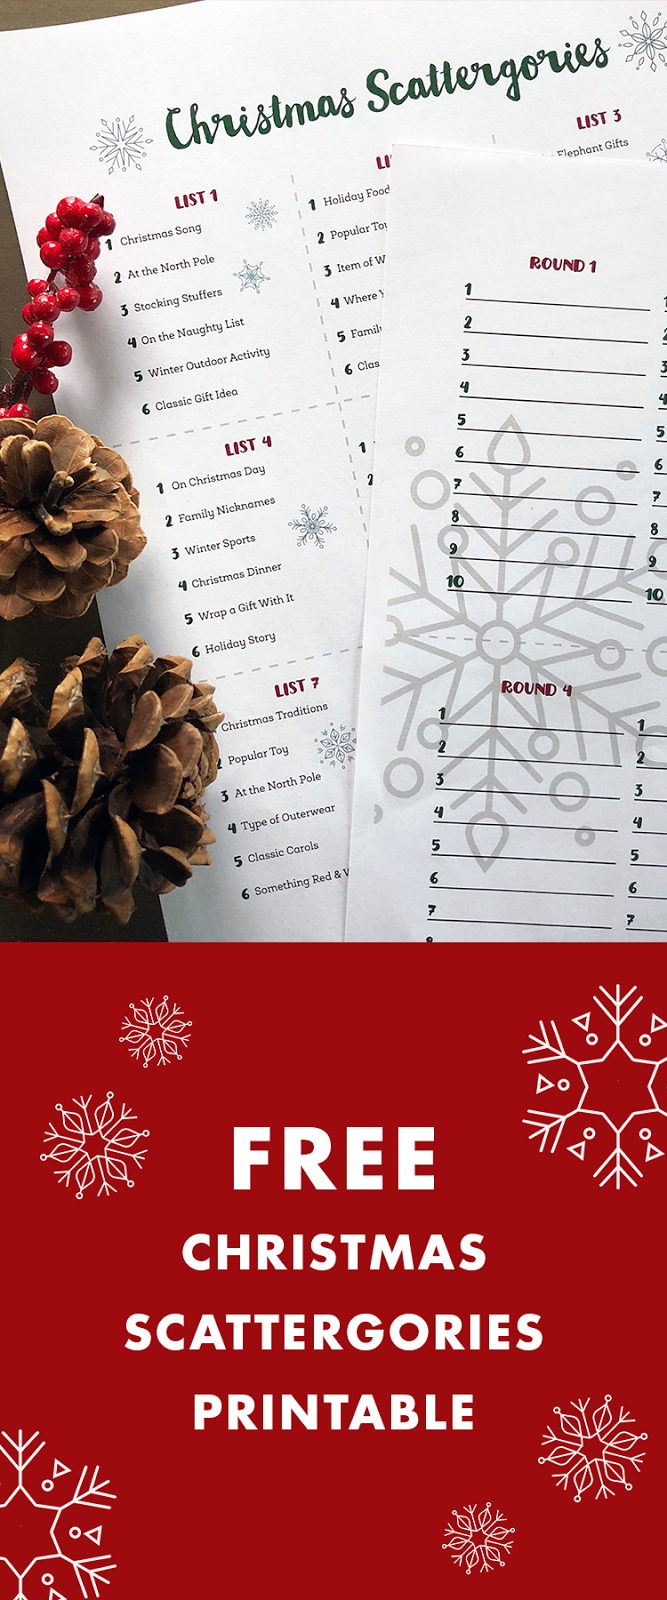 Meredith Plays: Christmas Scattergories Printable